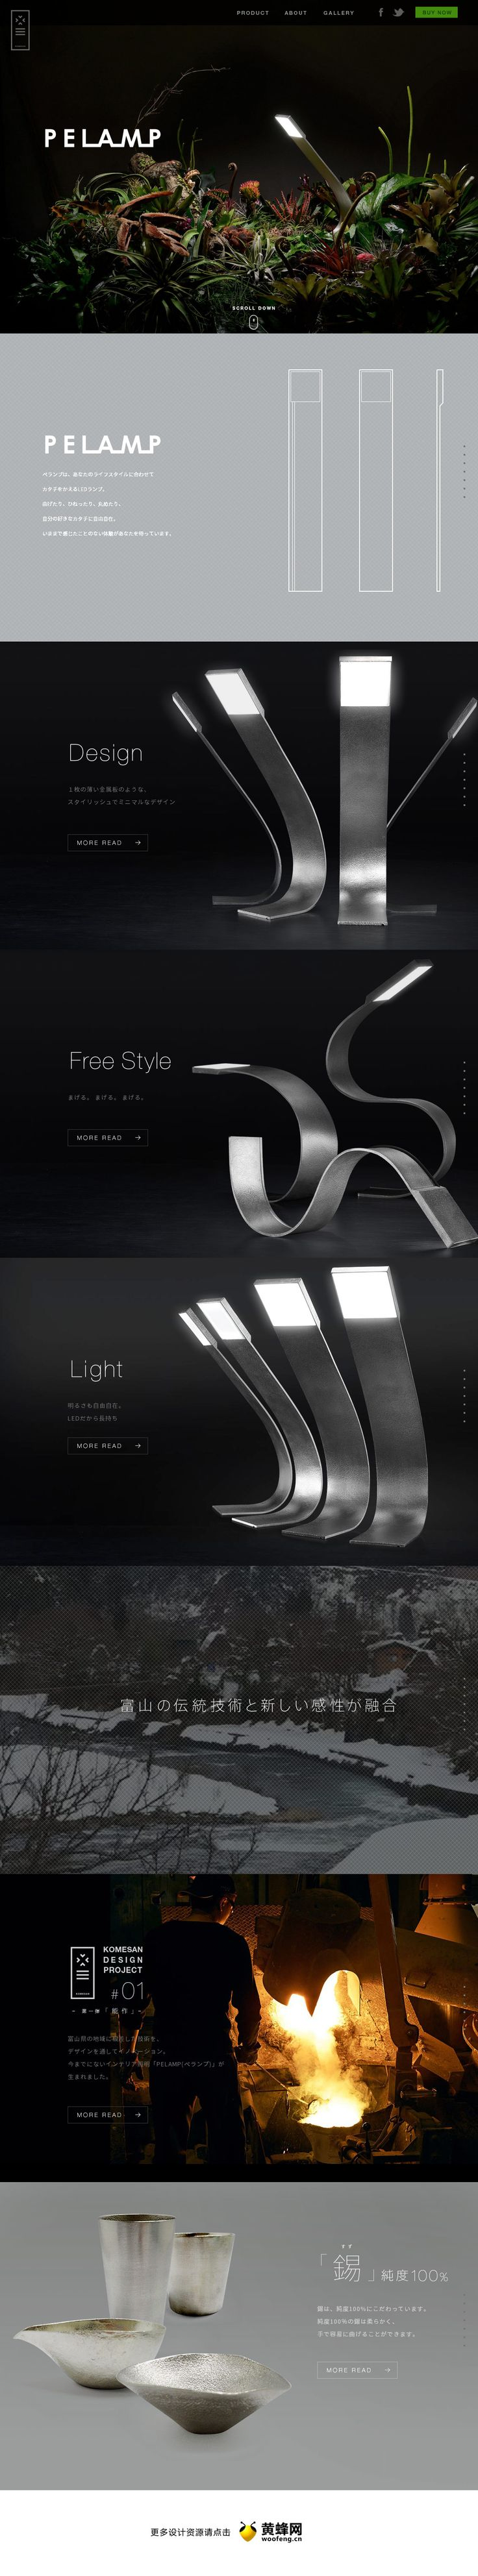 Komesan. Exquisite table lamp. (More design inspiration at www.aldenchong.com) #webdesign